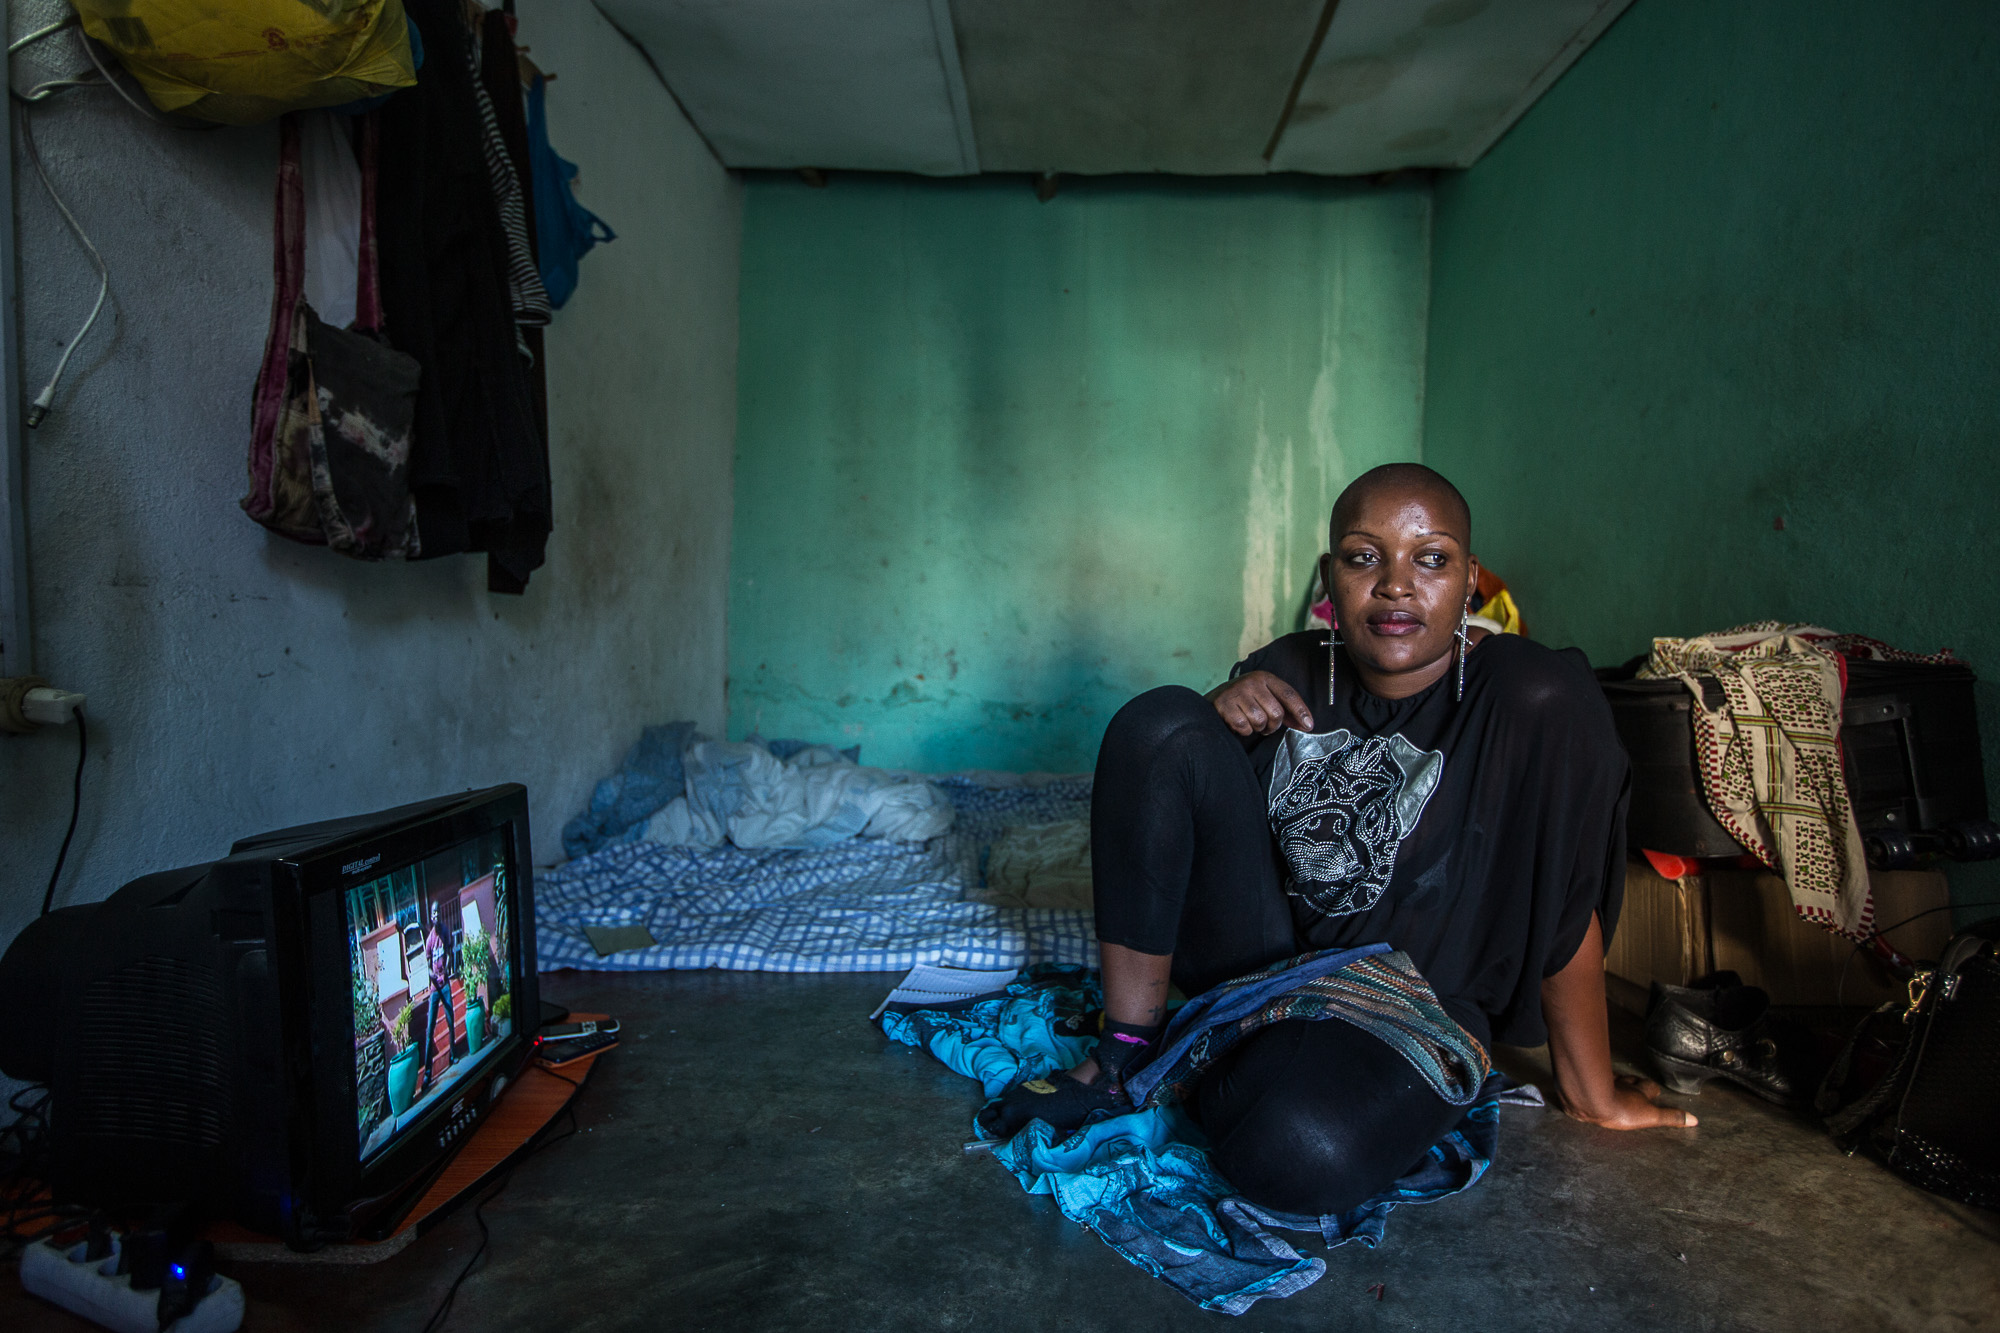 Precious, a commercial sex worker from Zimbabwe at her home in Beira, Mozambique.